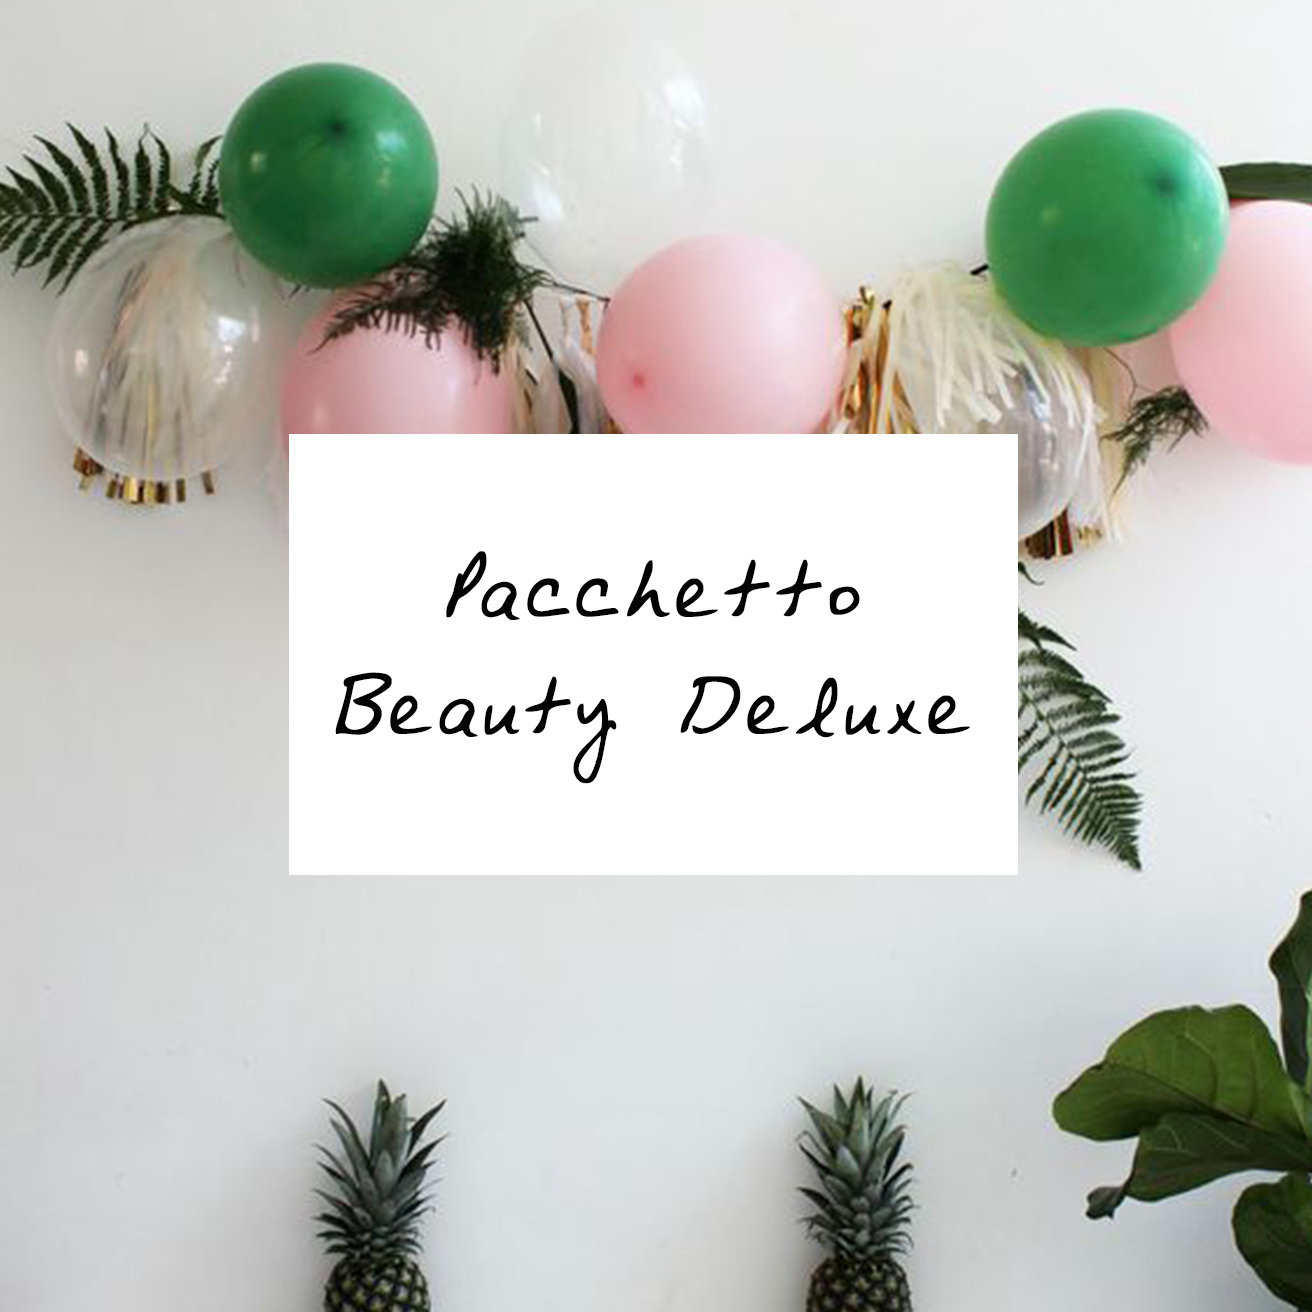 pacchetto-beauty-deluxe